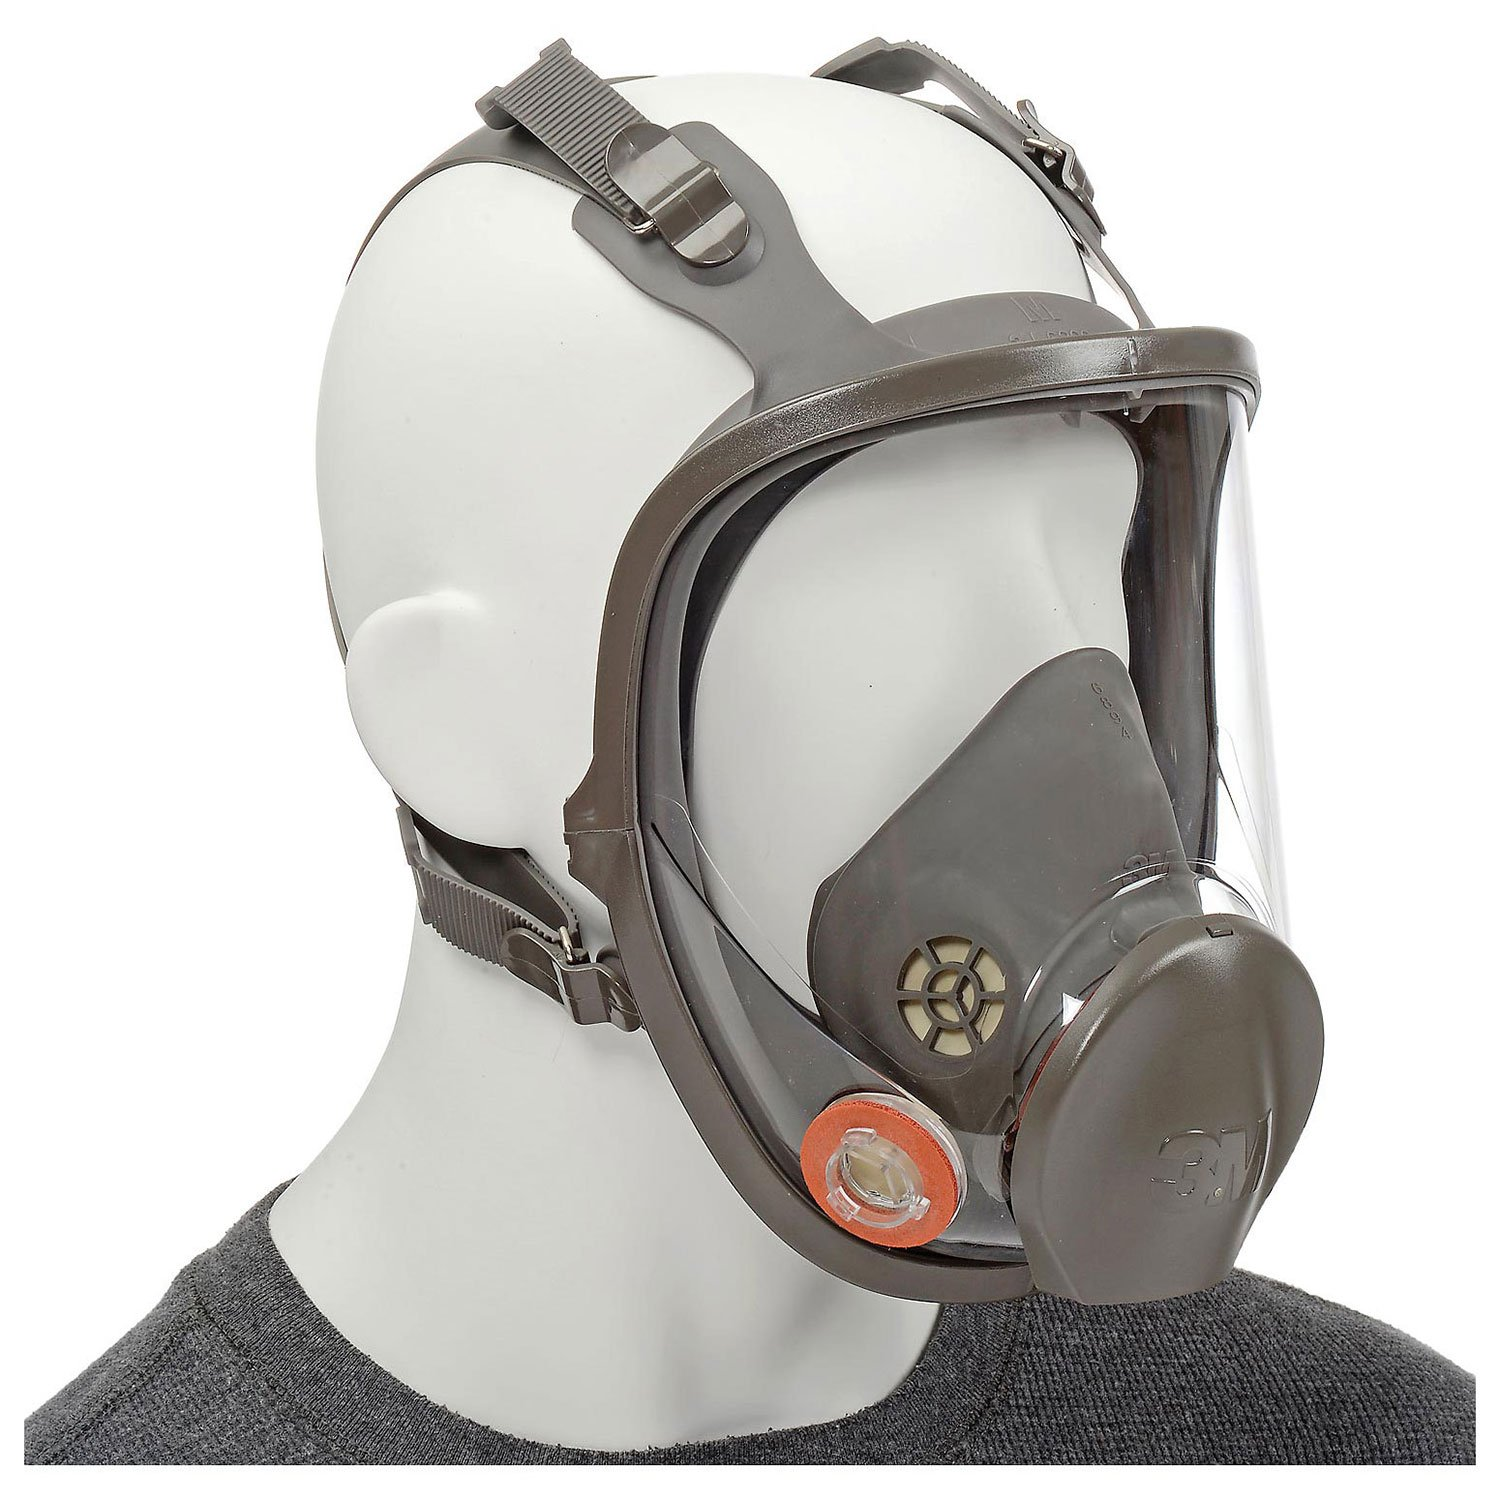 3M 6800 Reusable Respirator, Full Facepiece, Medium, 1 Each by 3M (Image #1)